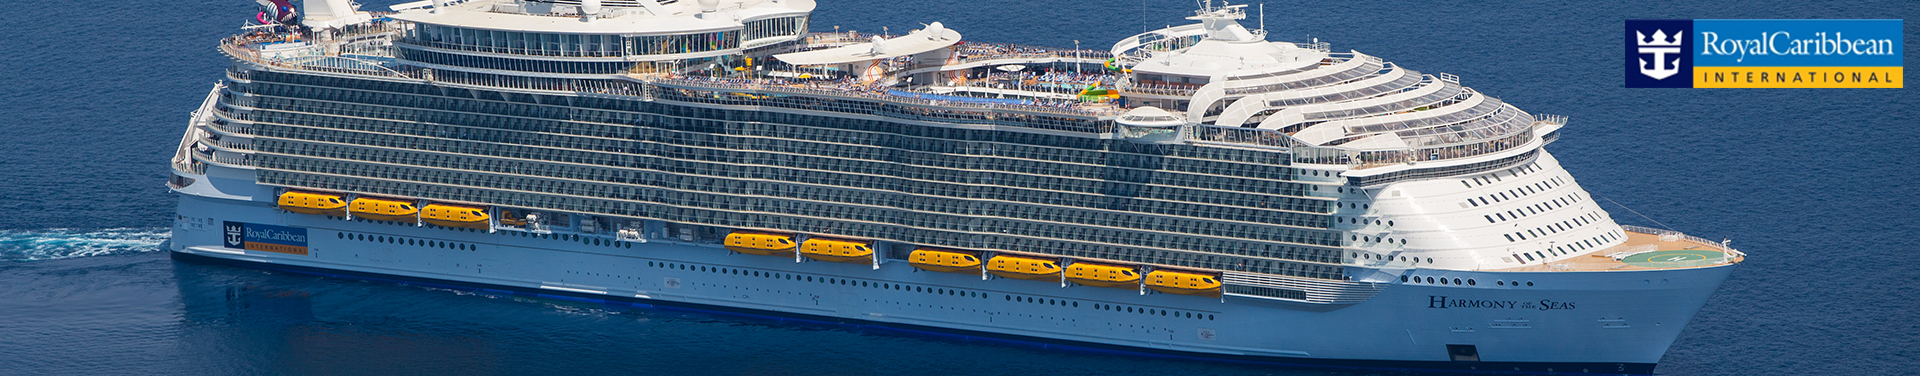 חברת Royal Caribbean